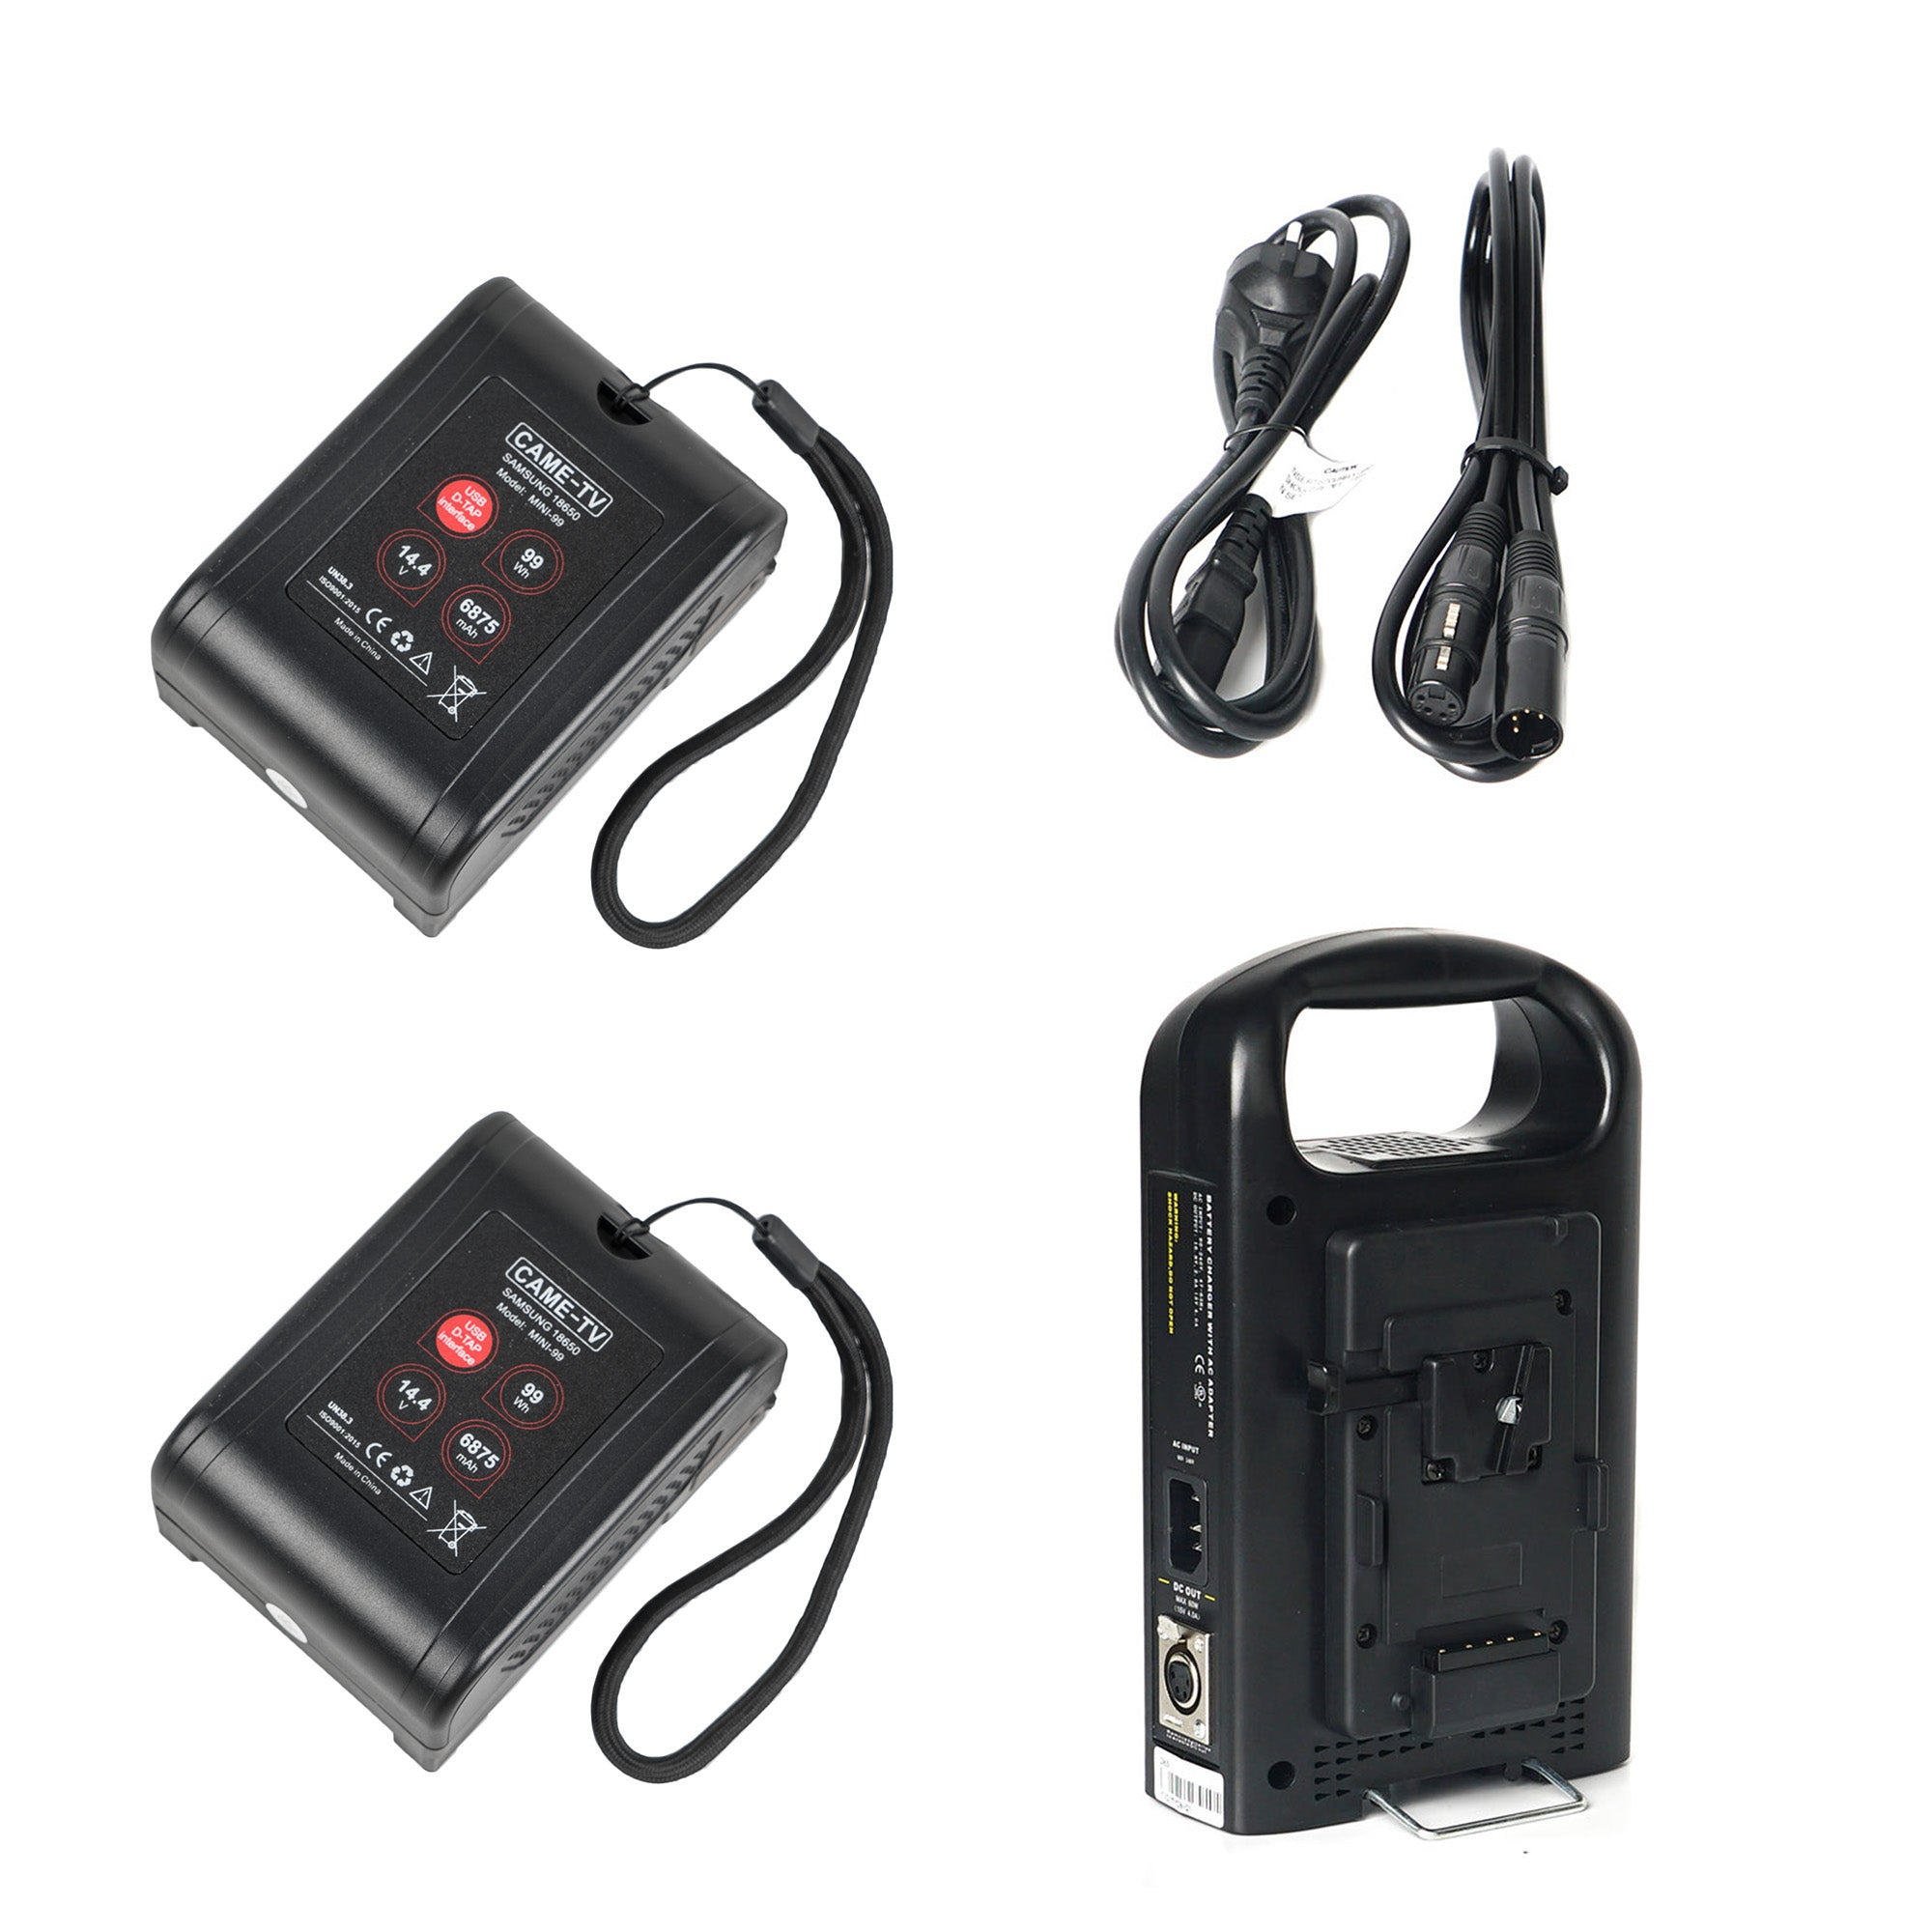 CAME-TV 2 Pieces Mini 99 Lightweight Battery with Charger Convert to 24V Output